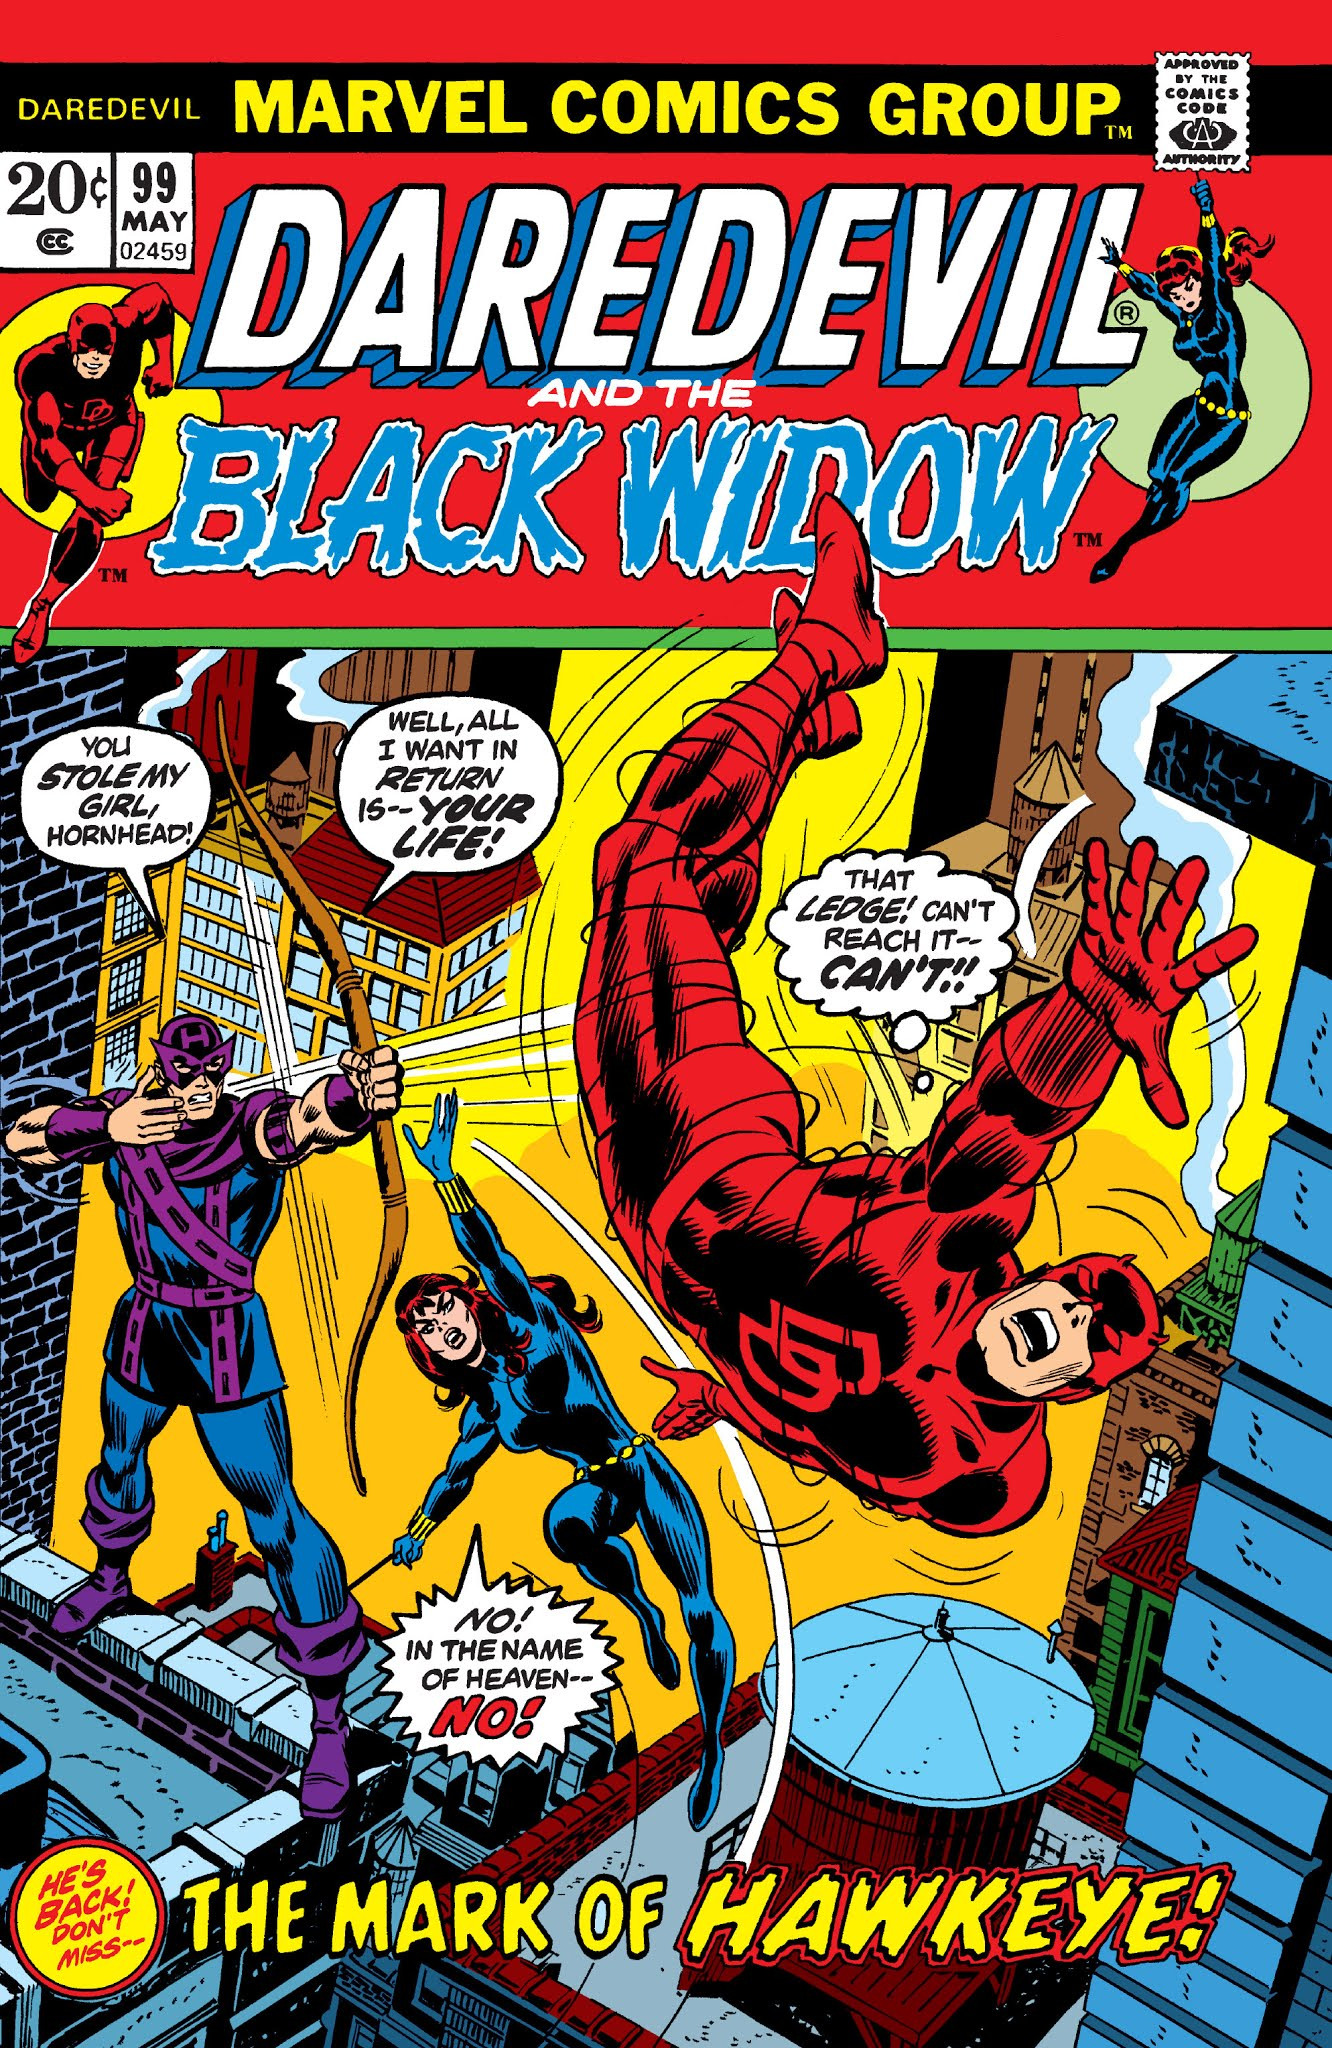 Daredevil Vol 1 99